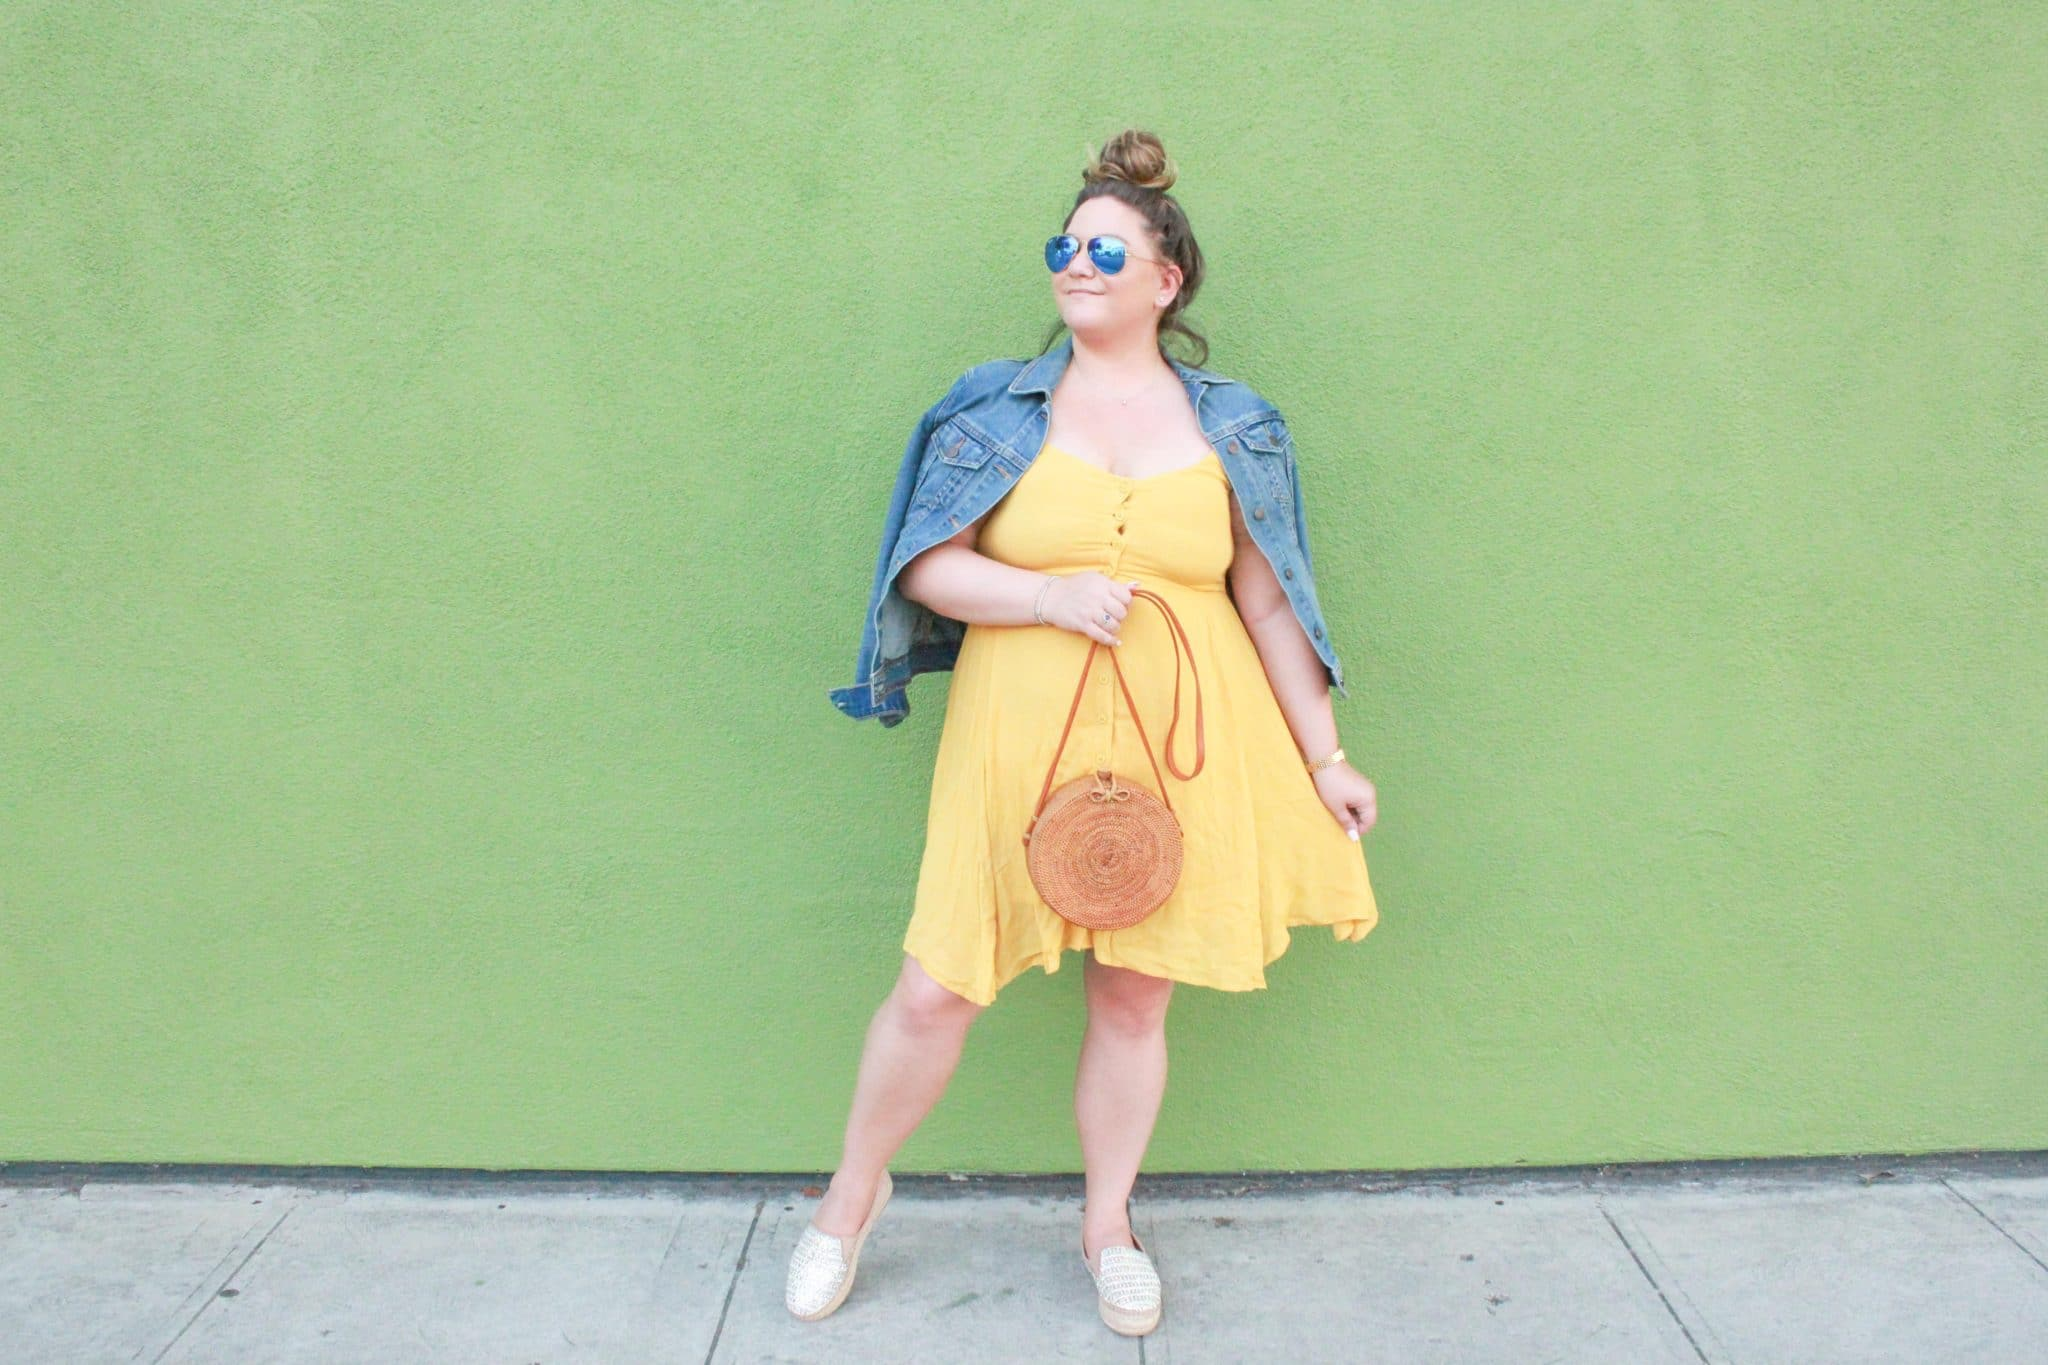 missyonmadison, missyonmadison blog, missyonmadison blogger, la blogger, fashion blog, fashion blogger, fall style, shop the mint, circle straw bag, summer trends, denim jacket, old navy denim jacket, yellow mini dress, yellow spaghetti strap dress, raybans, espadrille flats, steve madden proud, steve madden espadrilles, style blogger, messy bun, fall trends,